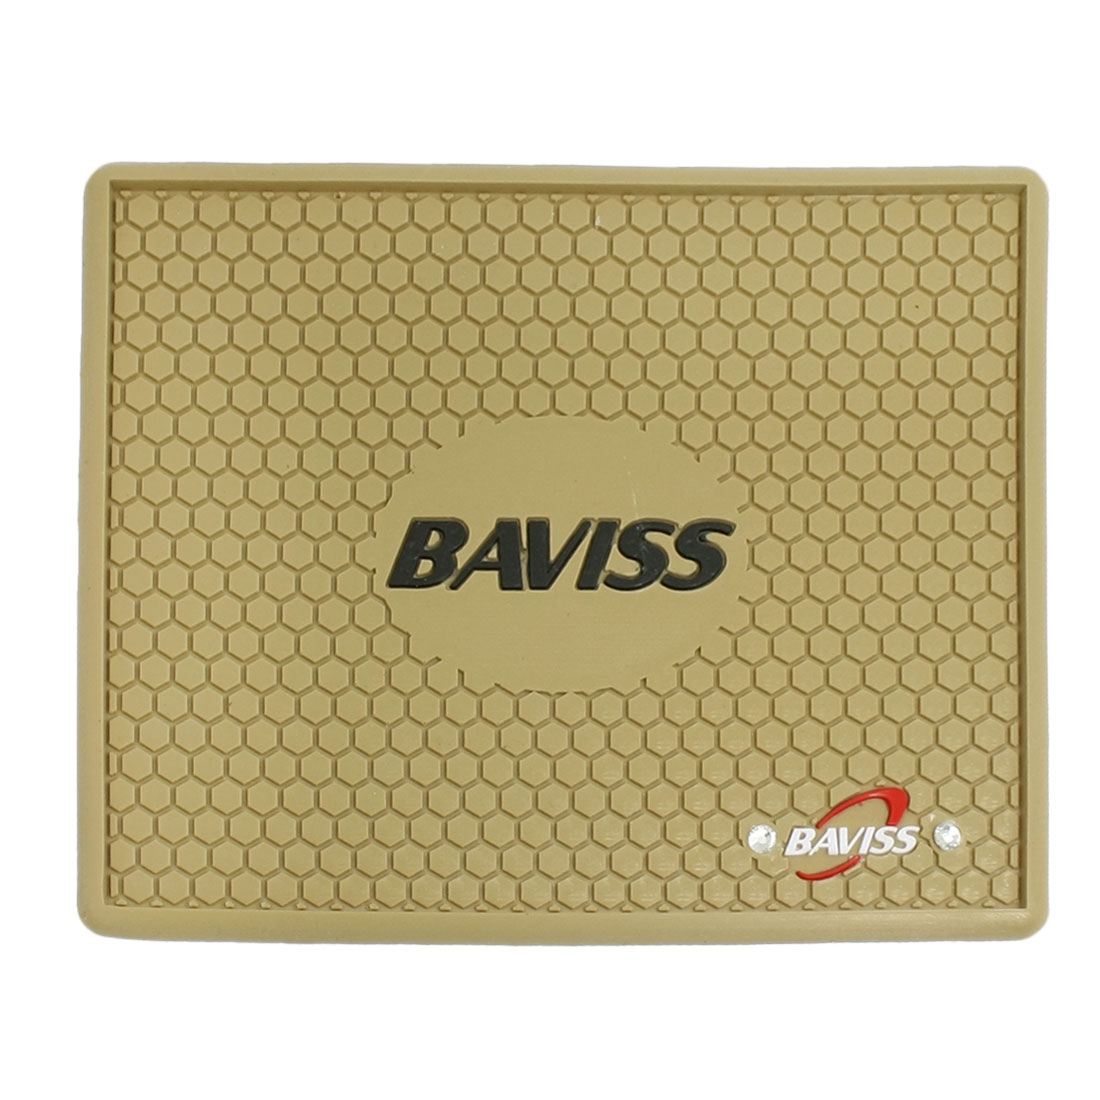 Car Interior Beige Rubber Textured Soccer Pattern Nonslip Mat Pad Holder